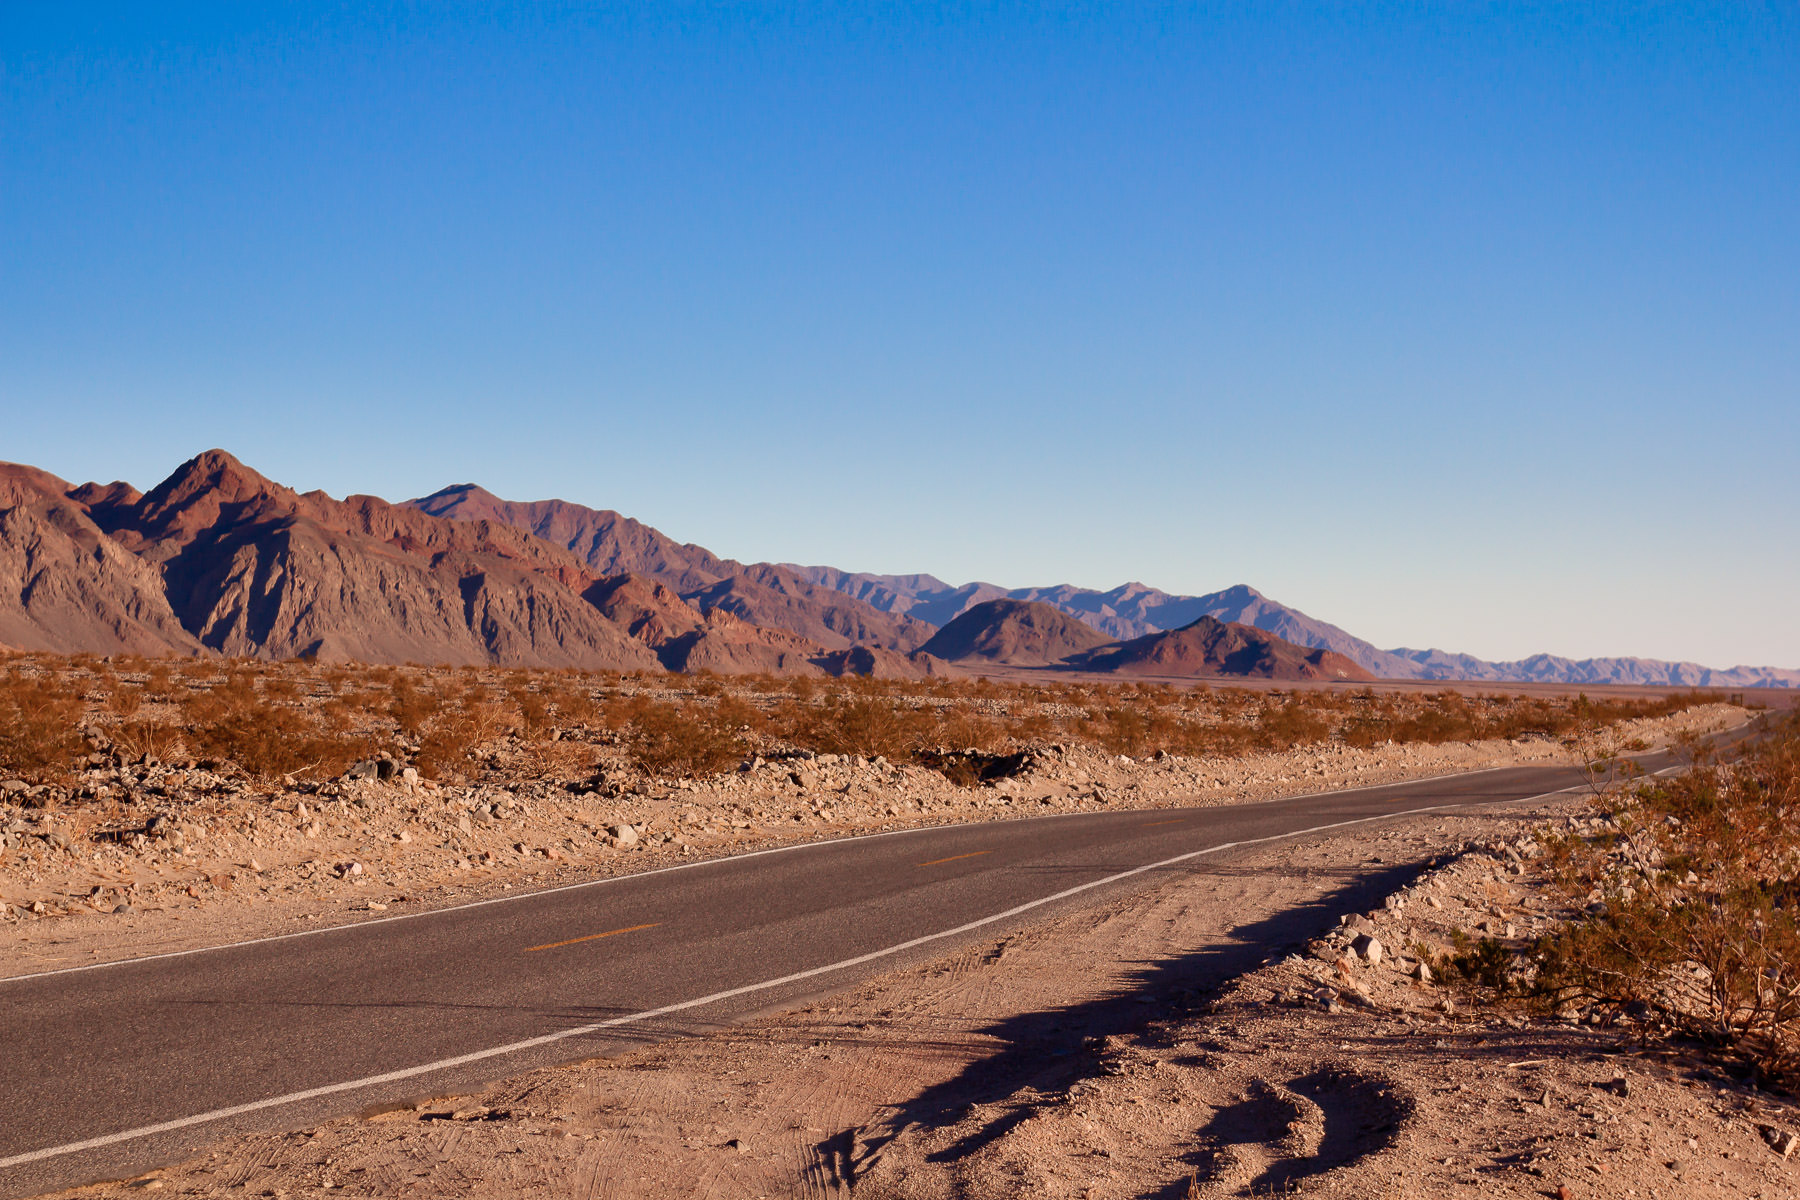 A lonely desert road leads through Death Valley National Park, California.